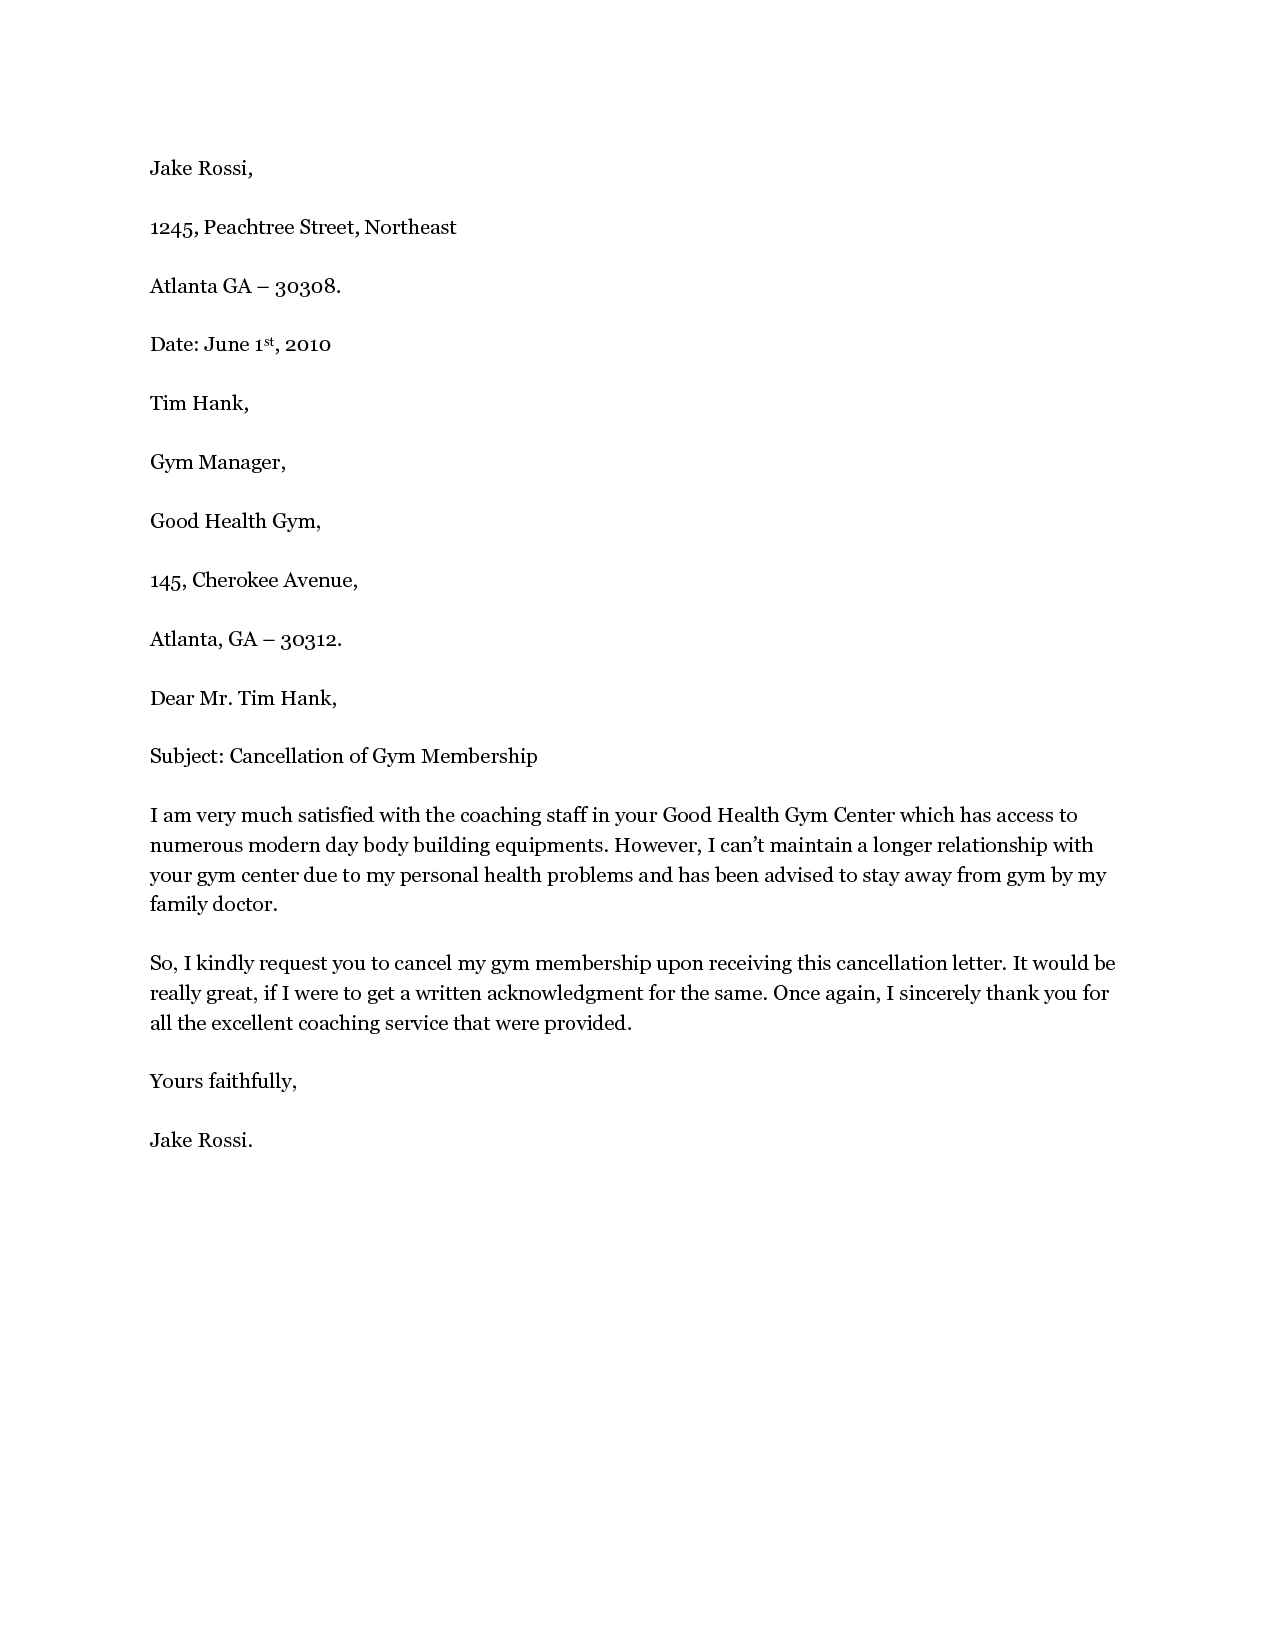 Cancel gym membership letter cancel gym membership for Gym membership cancellation letter template free